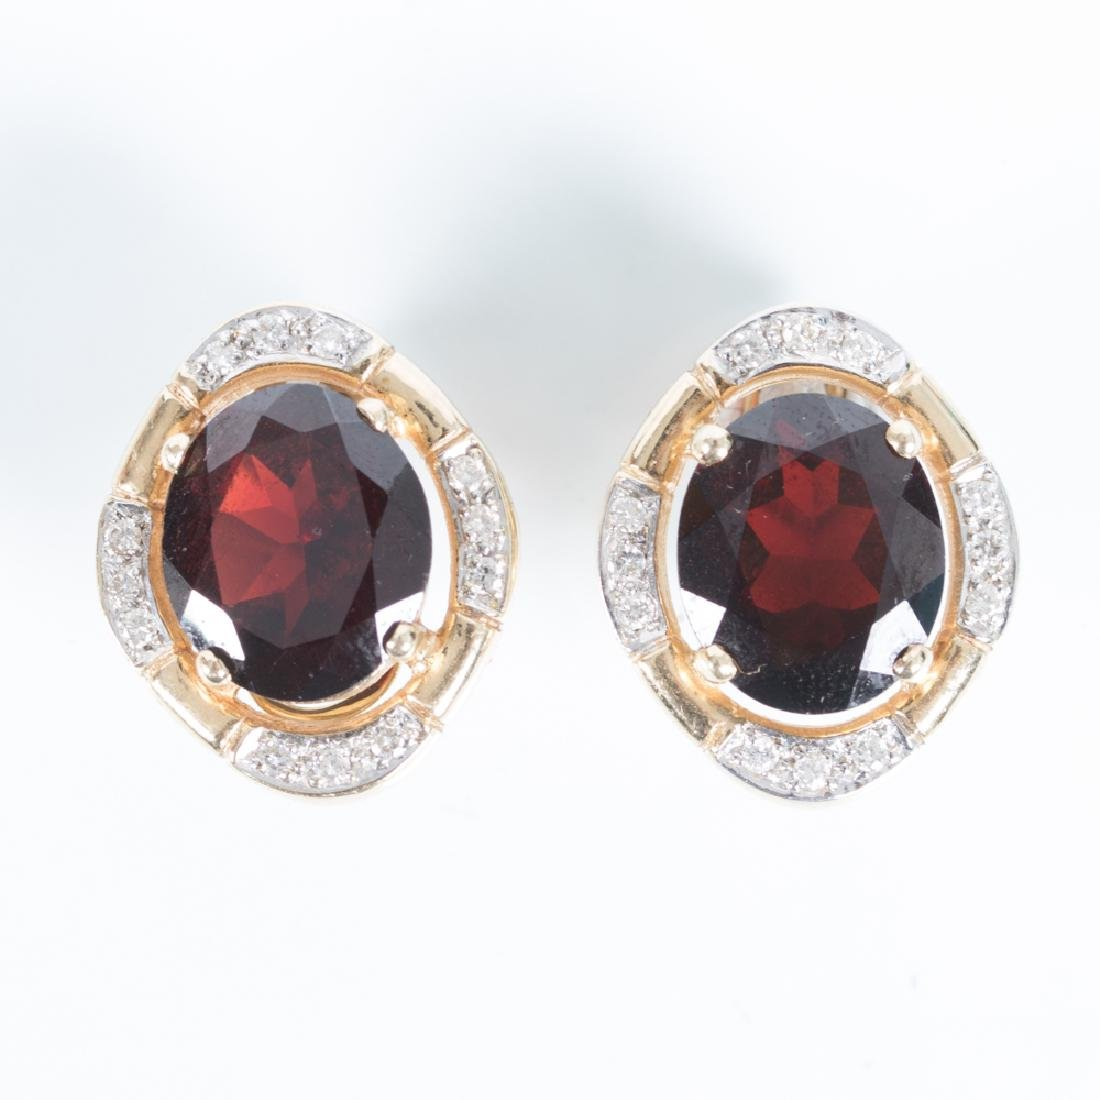 A Pair of 14kt. Yellow Gold, Diamond and Brown Garnet